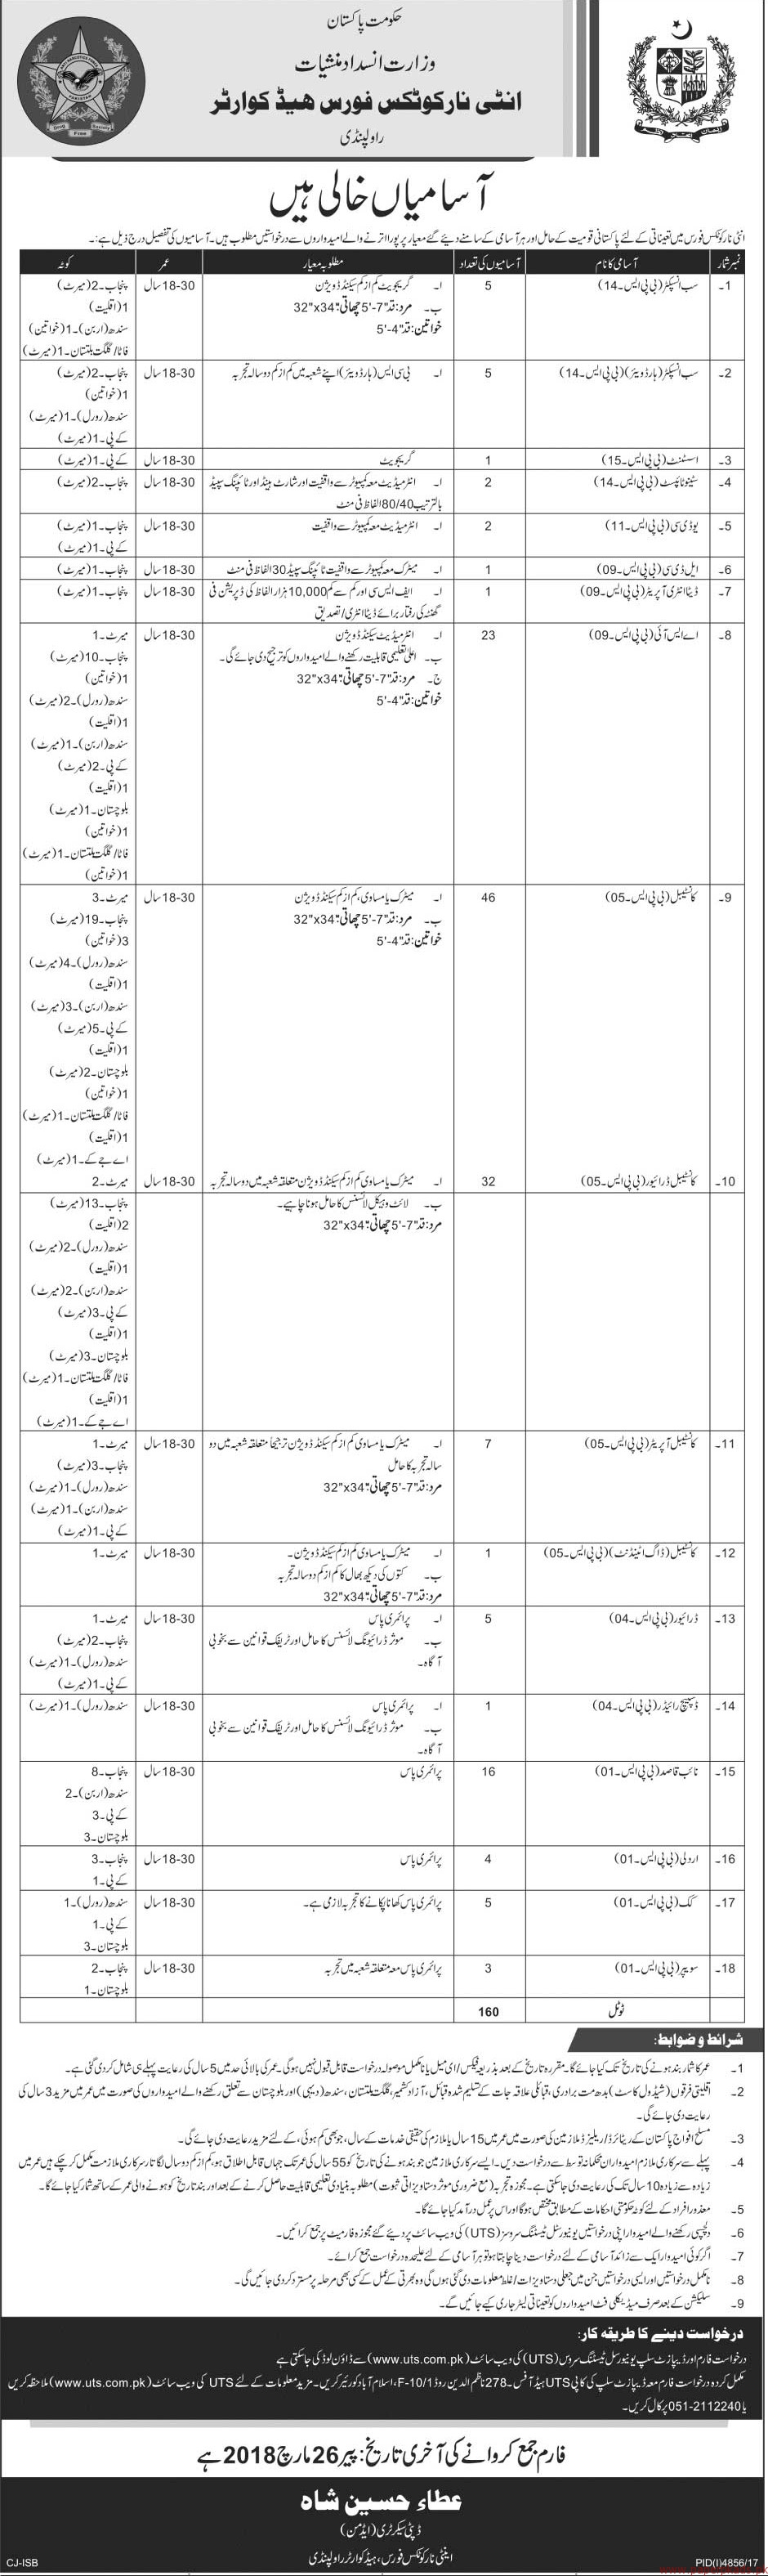 Anti Narcotics Force ANF Jobs 2018 Application Form online preparation